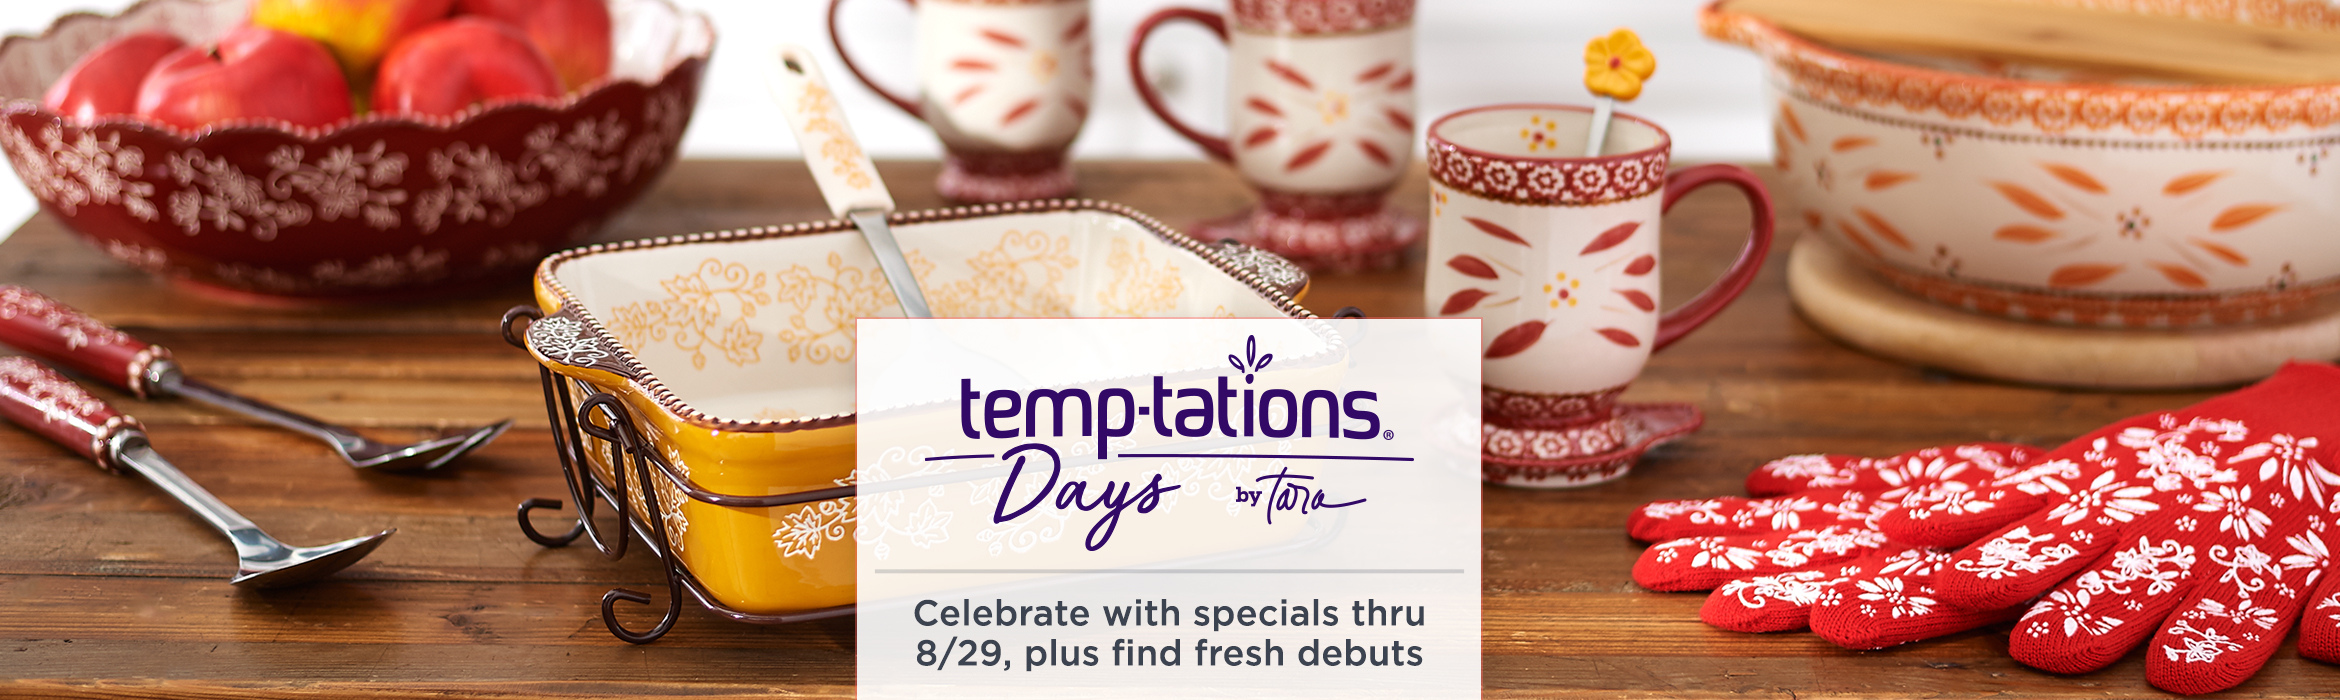 Temp-tations® Days.  Celebrate with specials thru 8/29, plus find fresh debuts